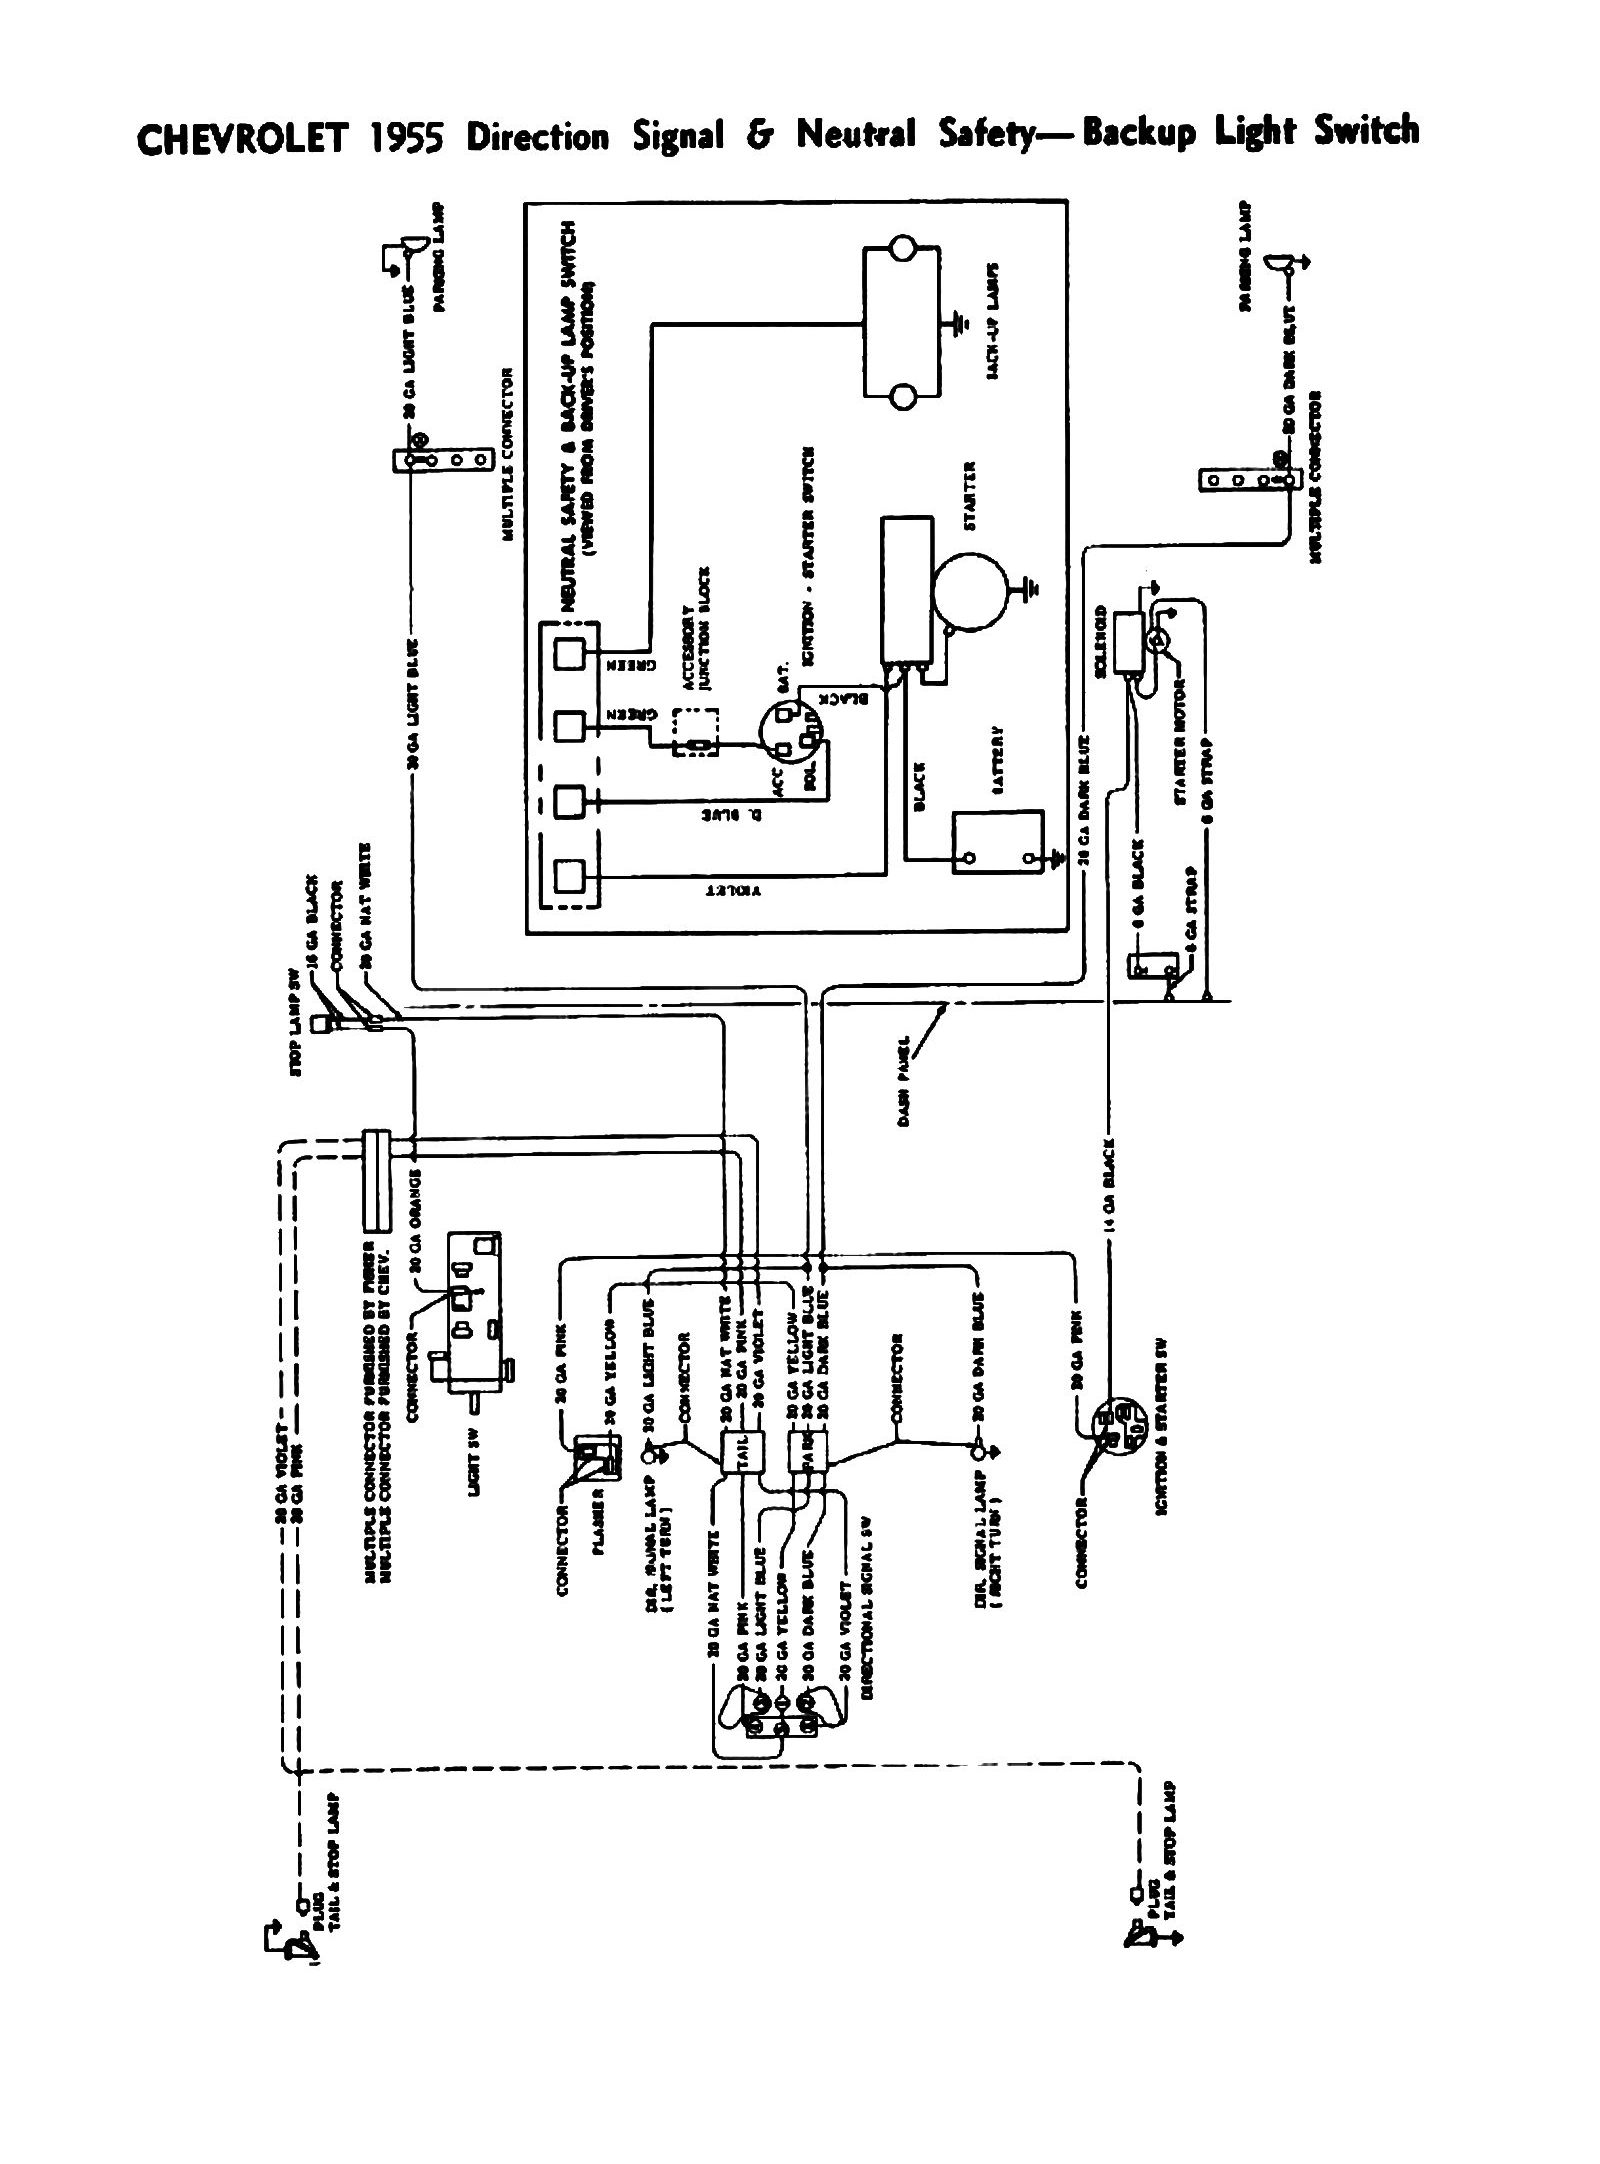 55signal chevy wiring diagrams chevy ignition switch wiring diagram at gsmportal.co